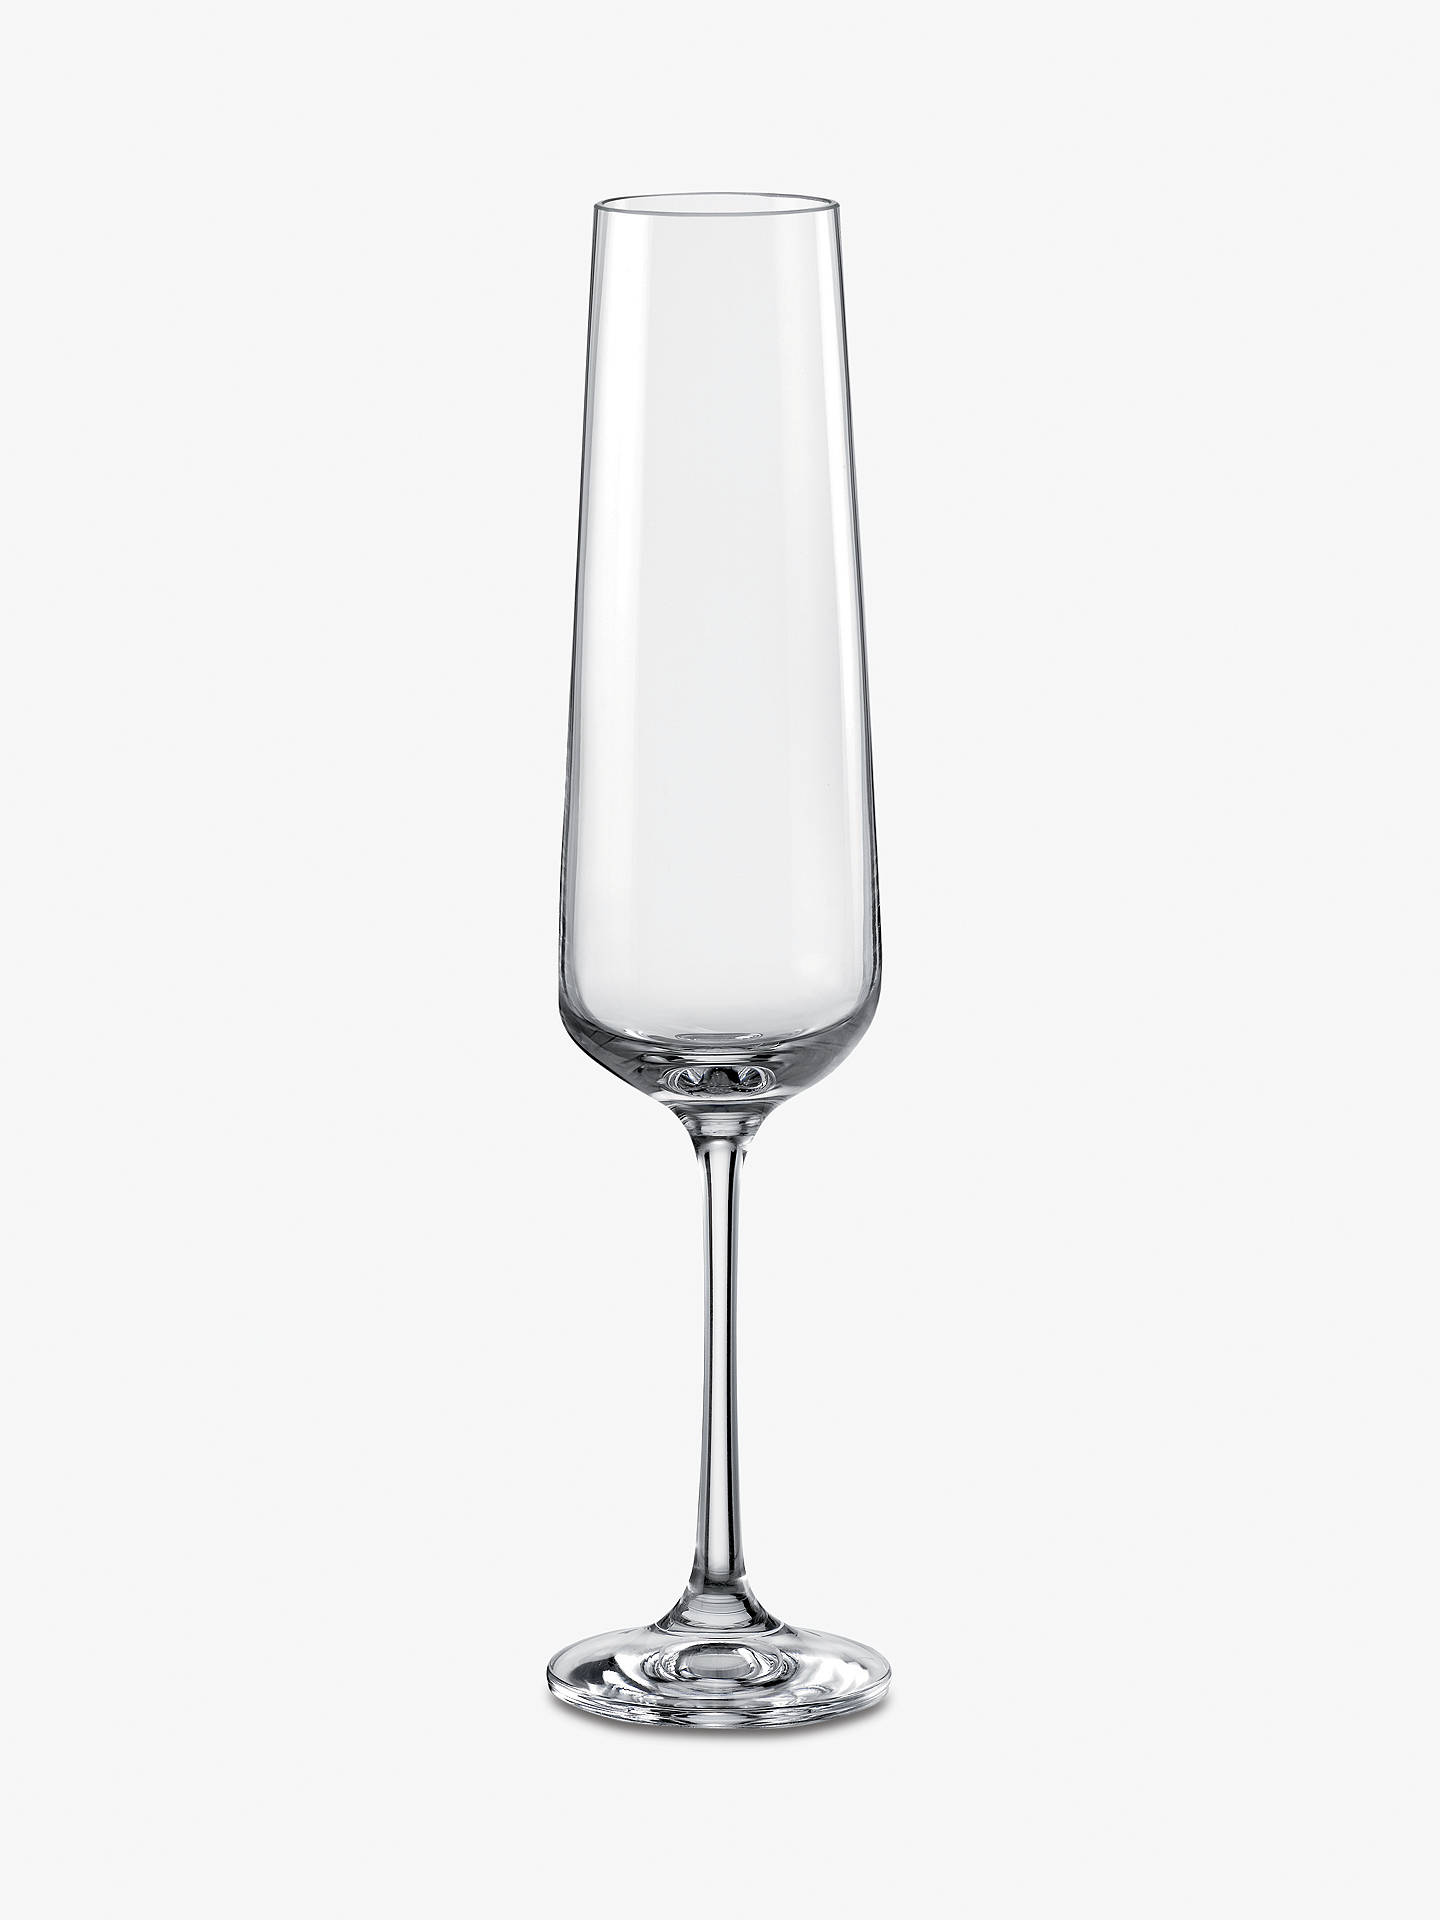 Dartington Crystal Simplicity Champagne Flutes 200ml Set Of 6 Clear At John Lewis Partners